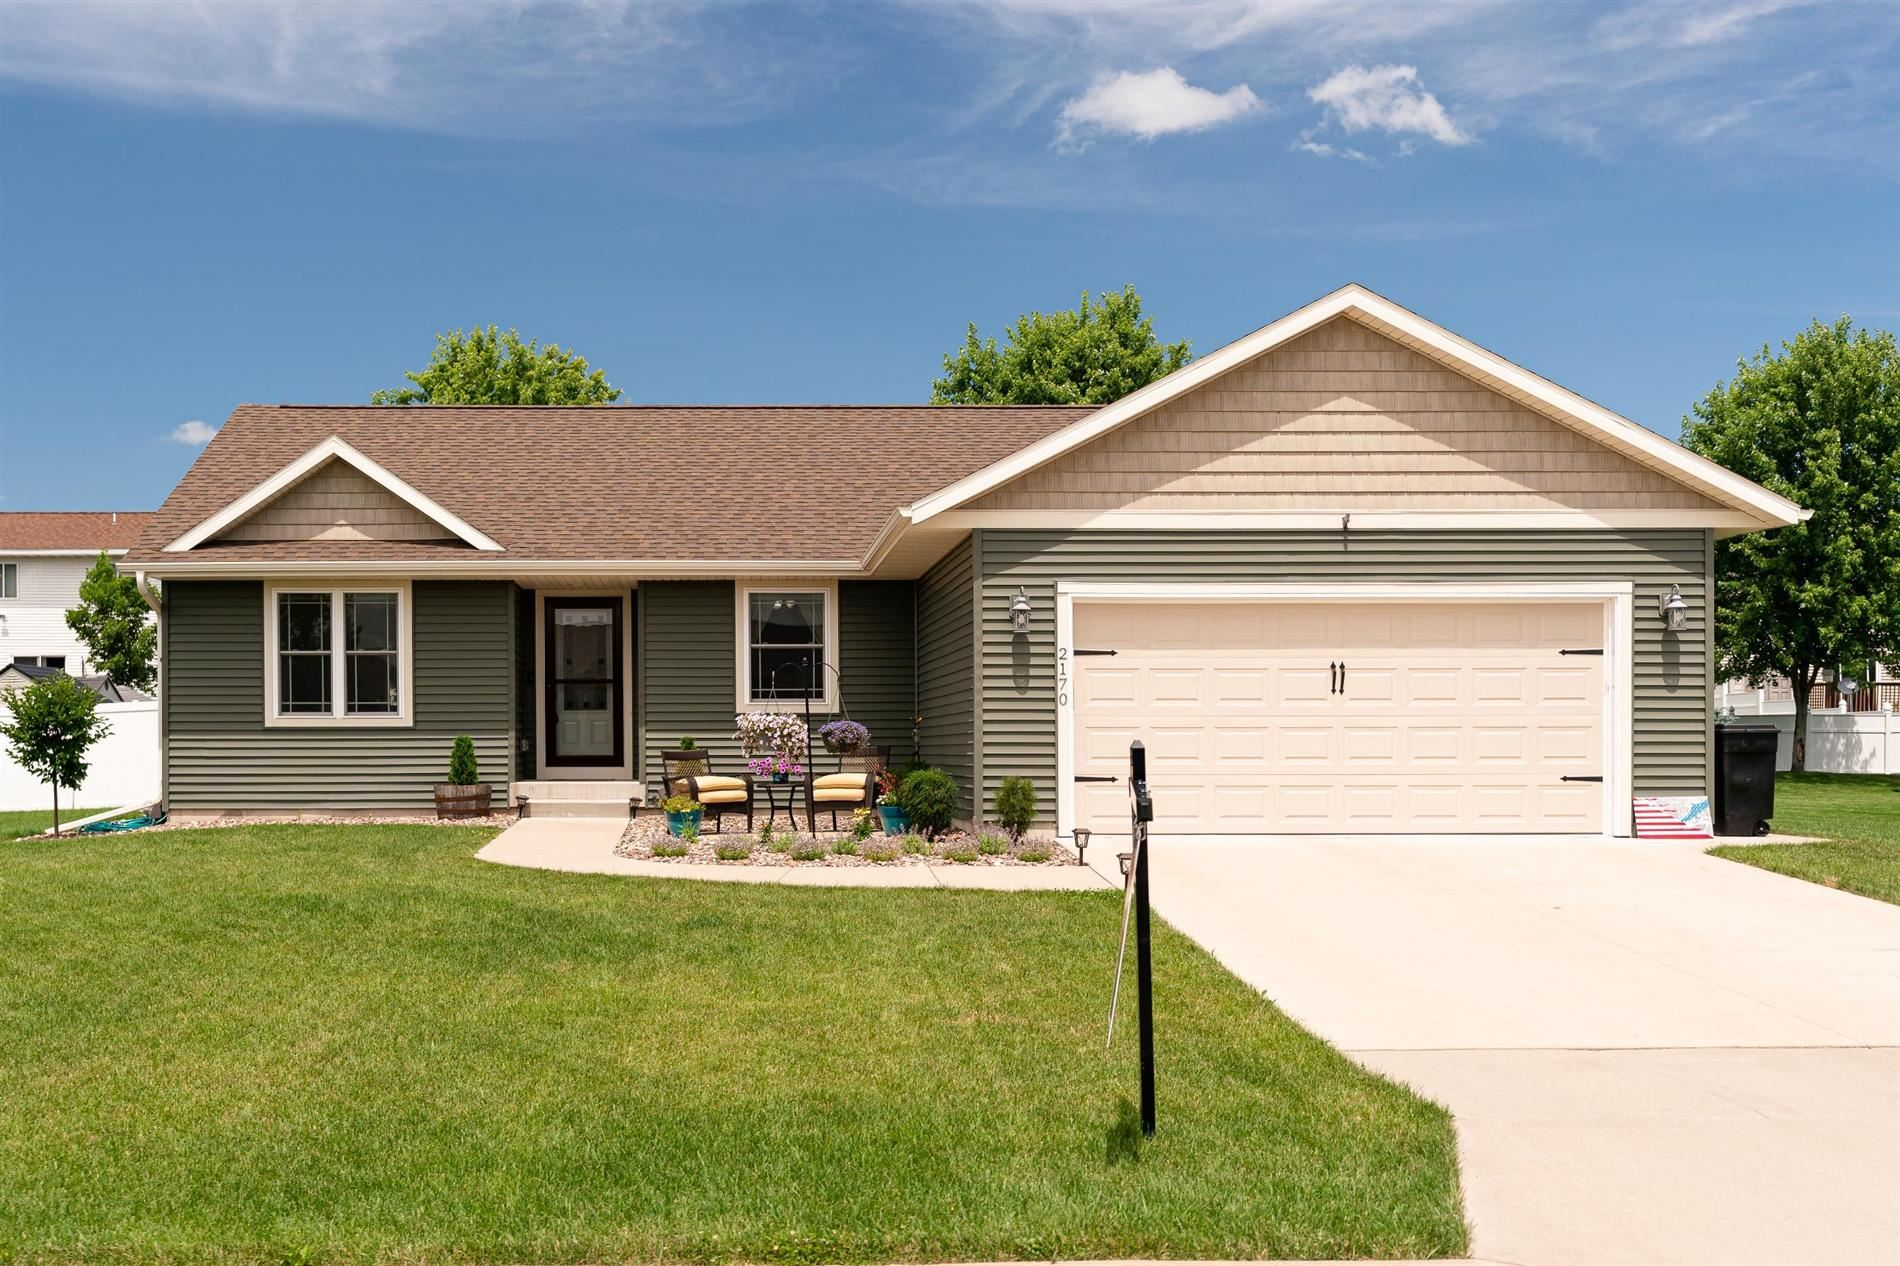 2170 Remington Ave, Sparta, WI 54656 - MLS#: 1695560